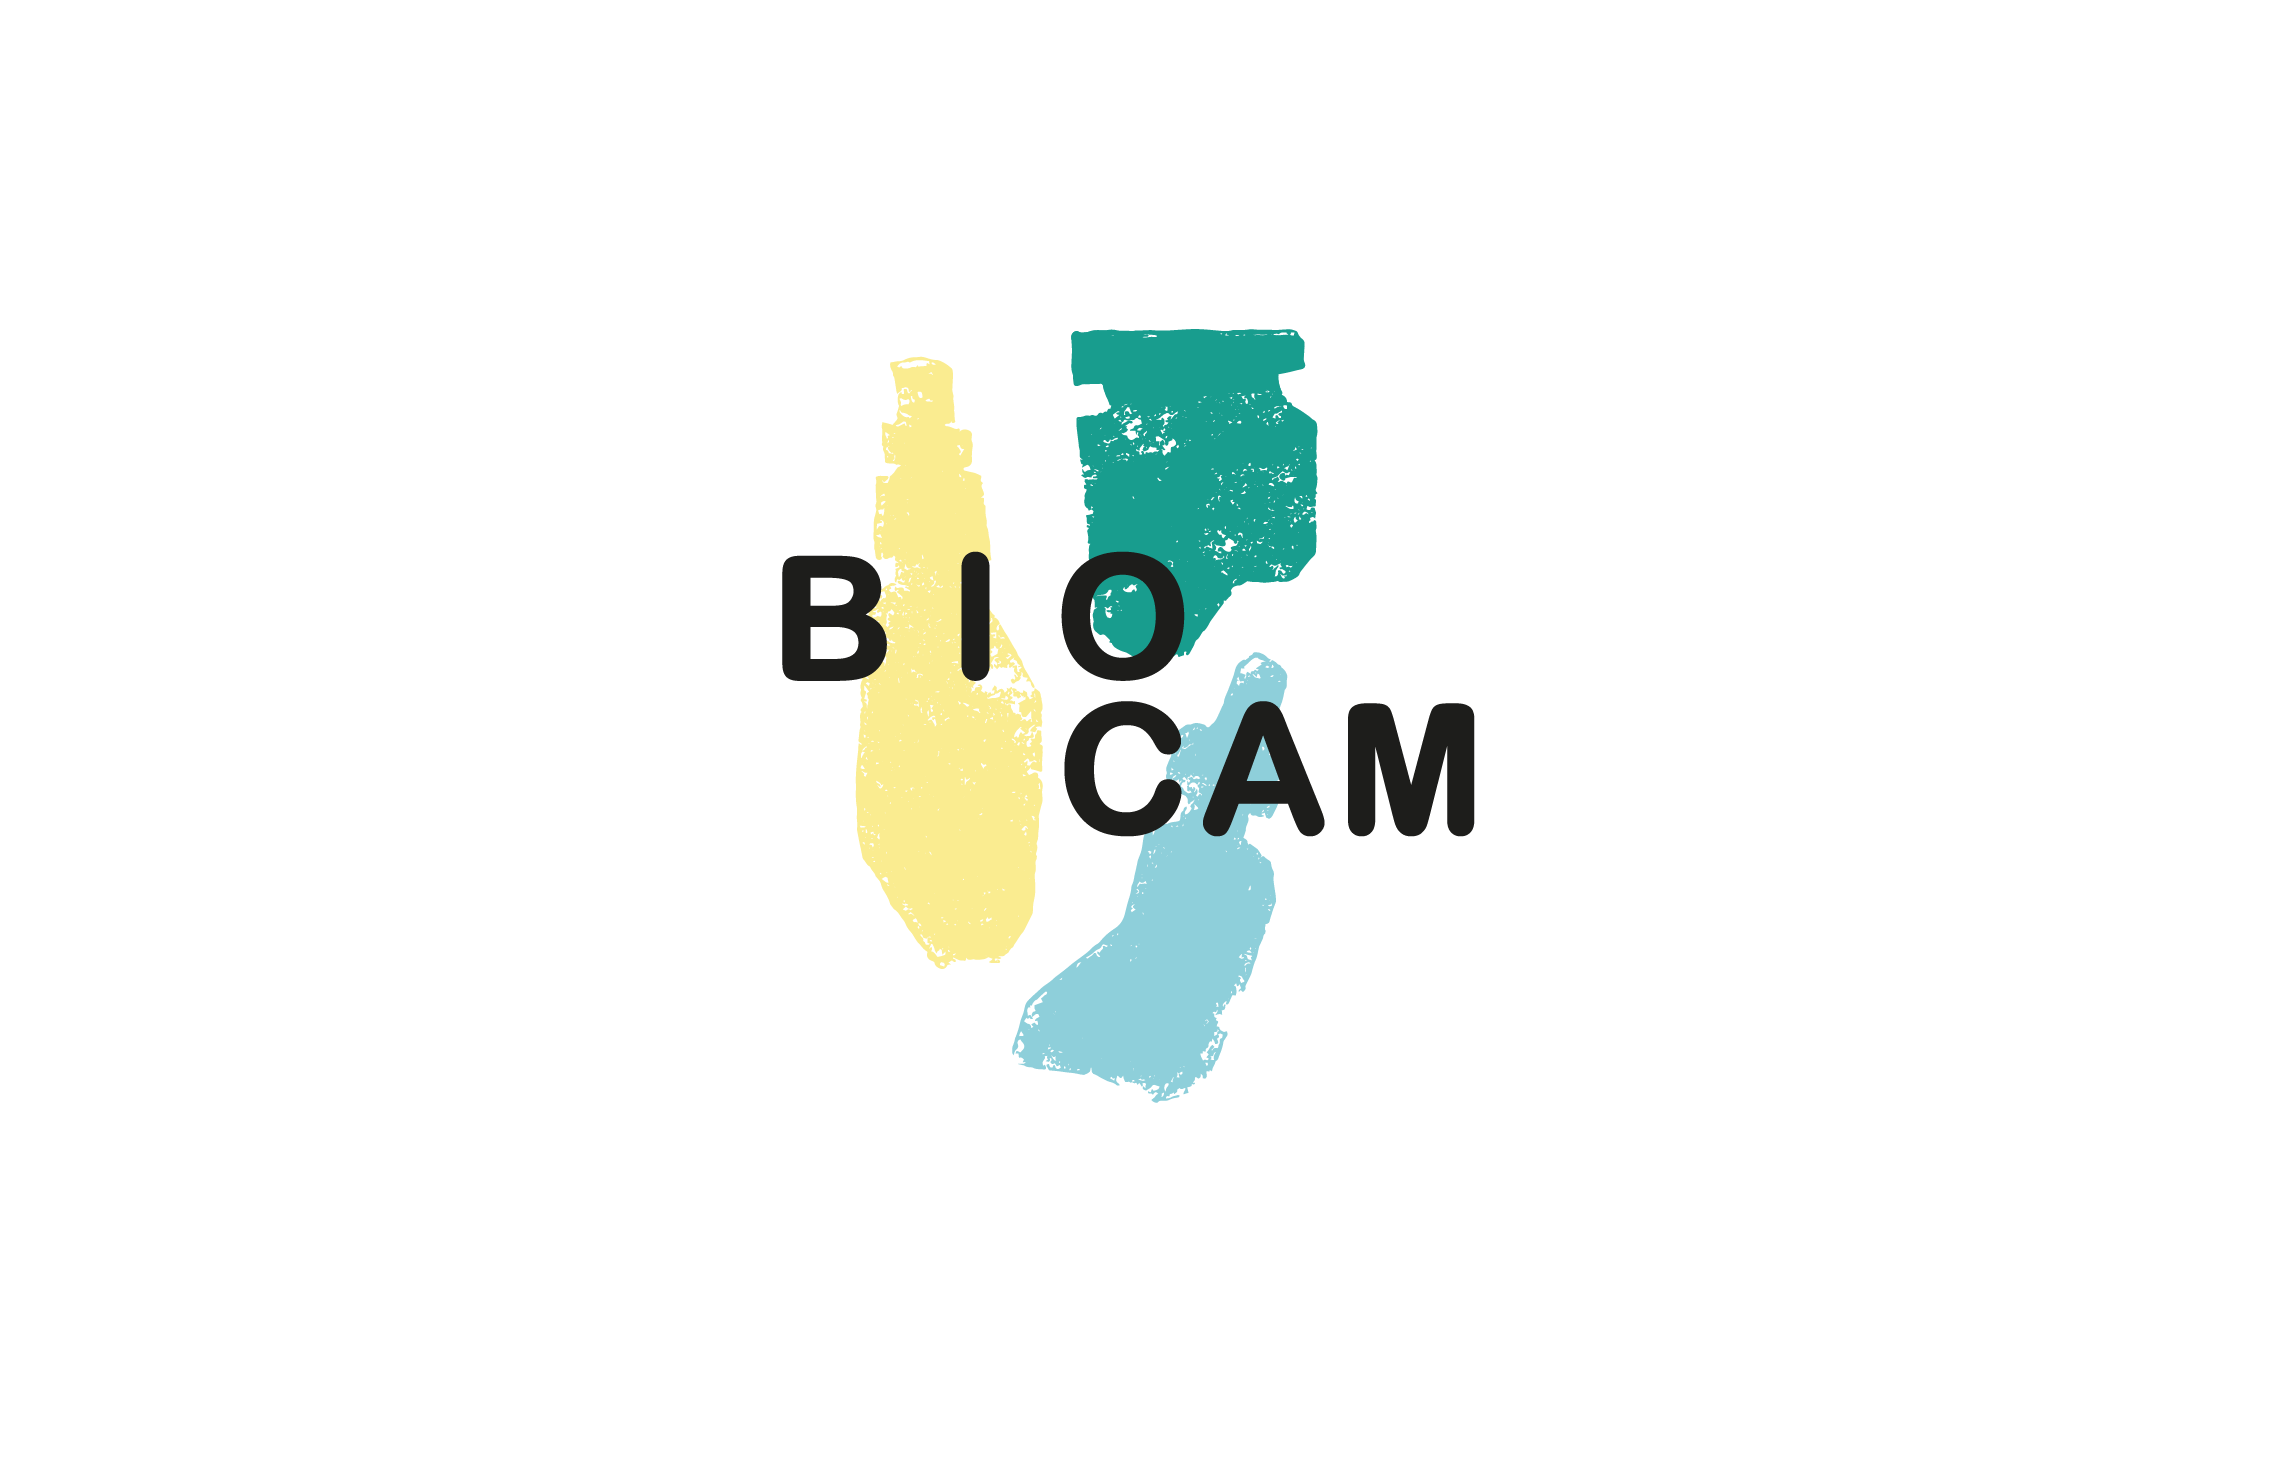 logo-biocam-design-graphique